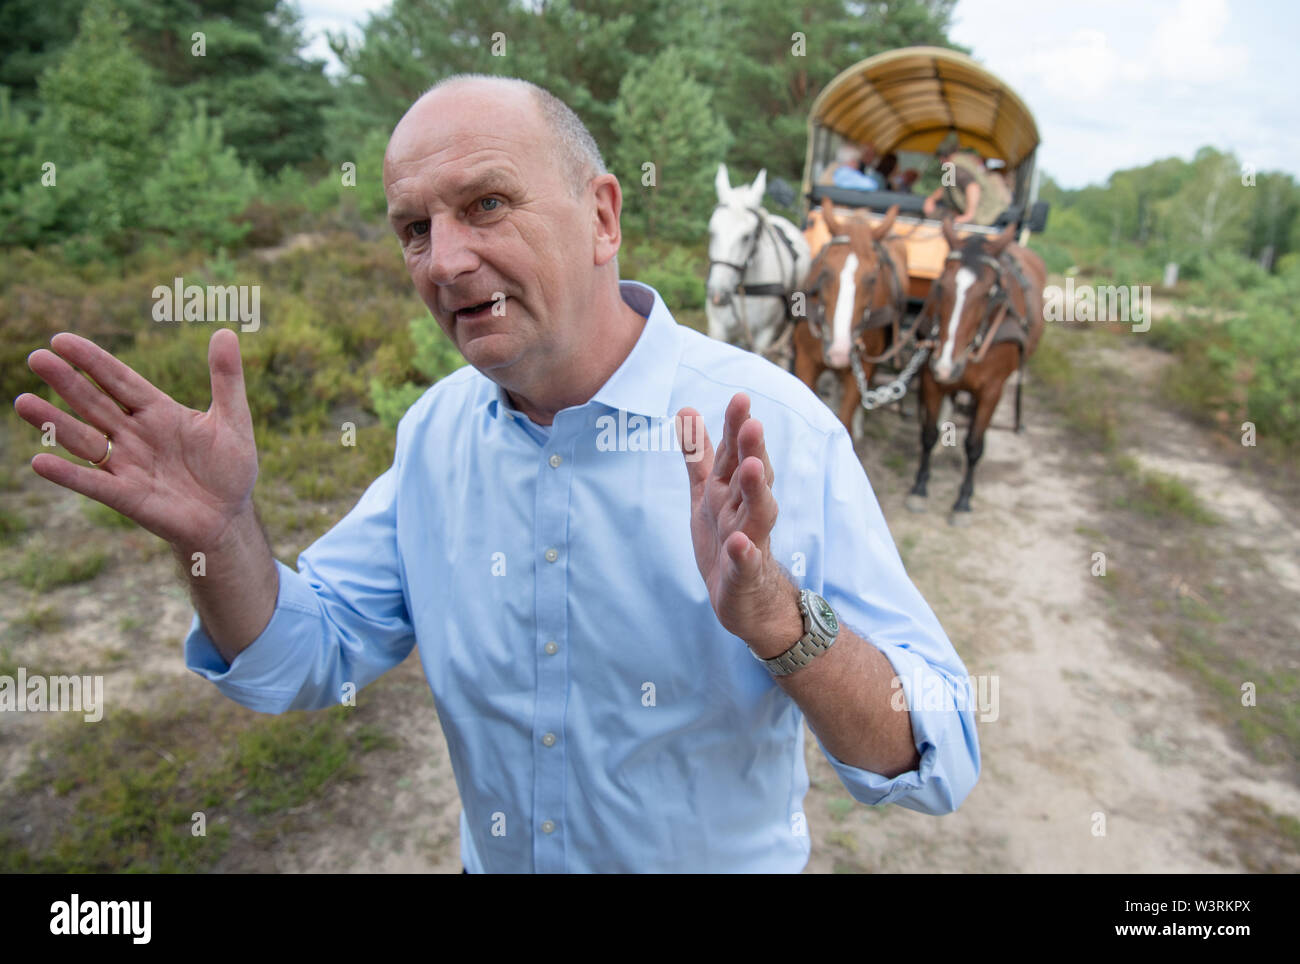 Pfalzheim, Germany. 17th July, 2019. Dietmar Woidke (SPD), Minister President of Brandenburg, speaks on the grounds of Sielmann's natural landscape Kyritz-Ruppiner Heide. There's a Kremser in the background. Credit: Soeren Stache/dpa/ZB/dpa/Alamy Live News - Stock Image